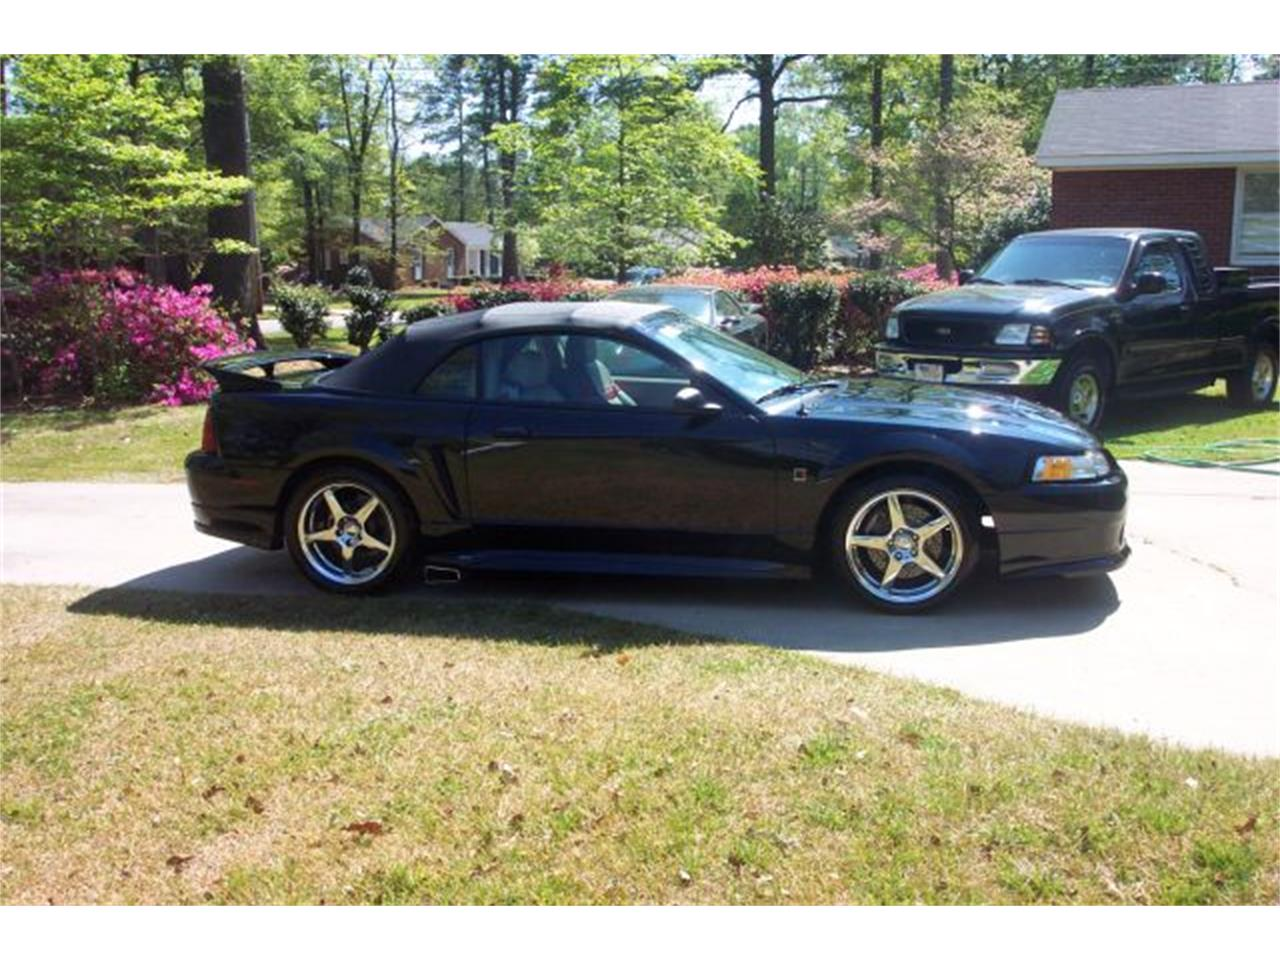 Large Picture of 2000 Ford Mustang (Roush) located in North Carolina Offered by a Private Seller - GAM7